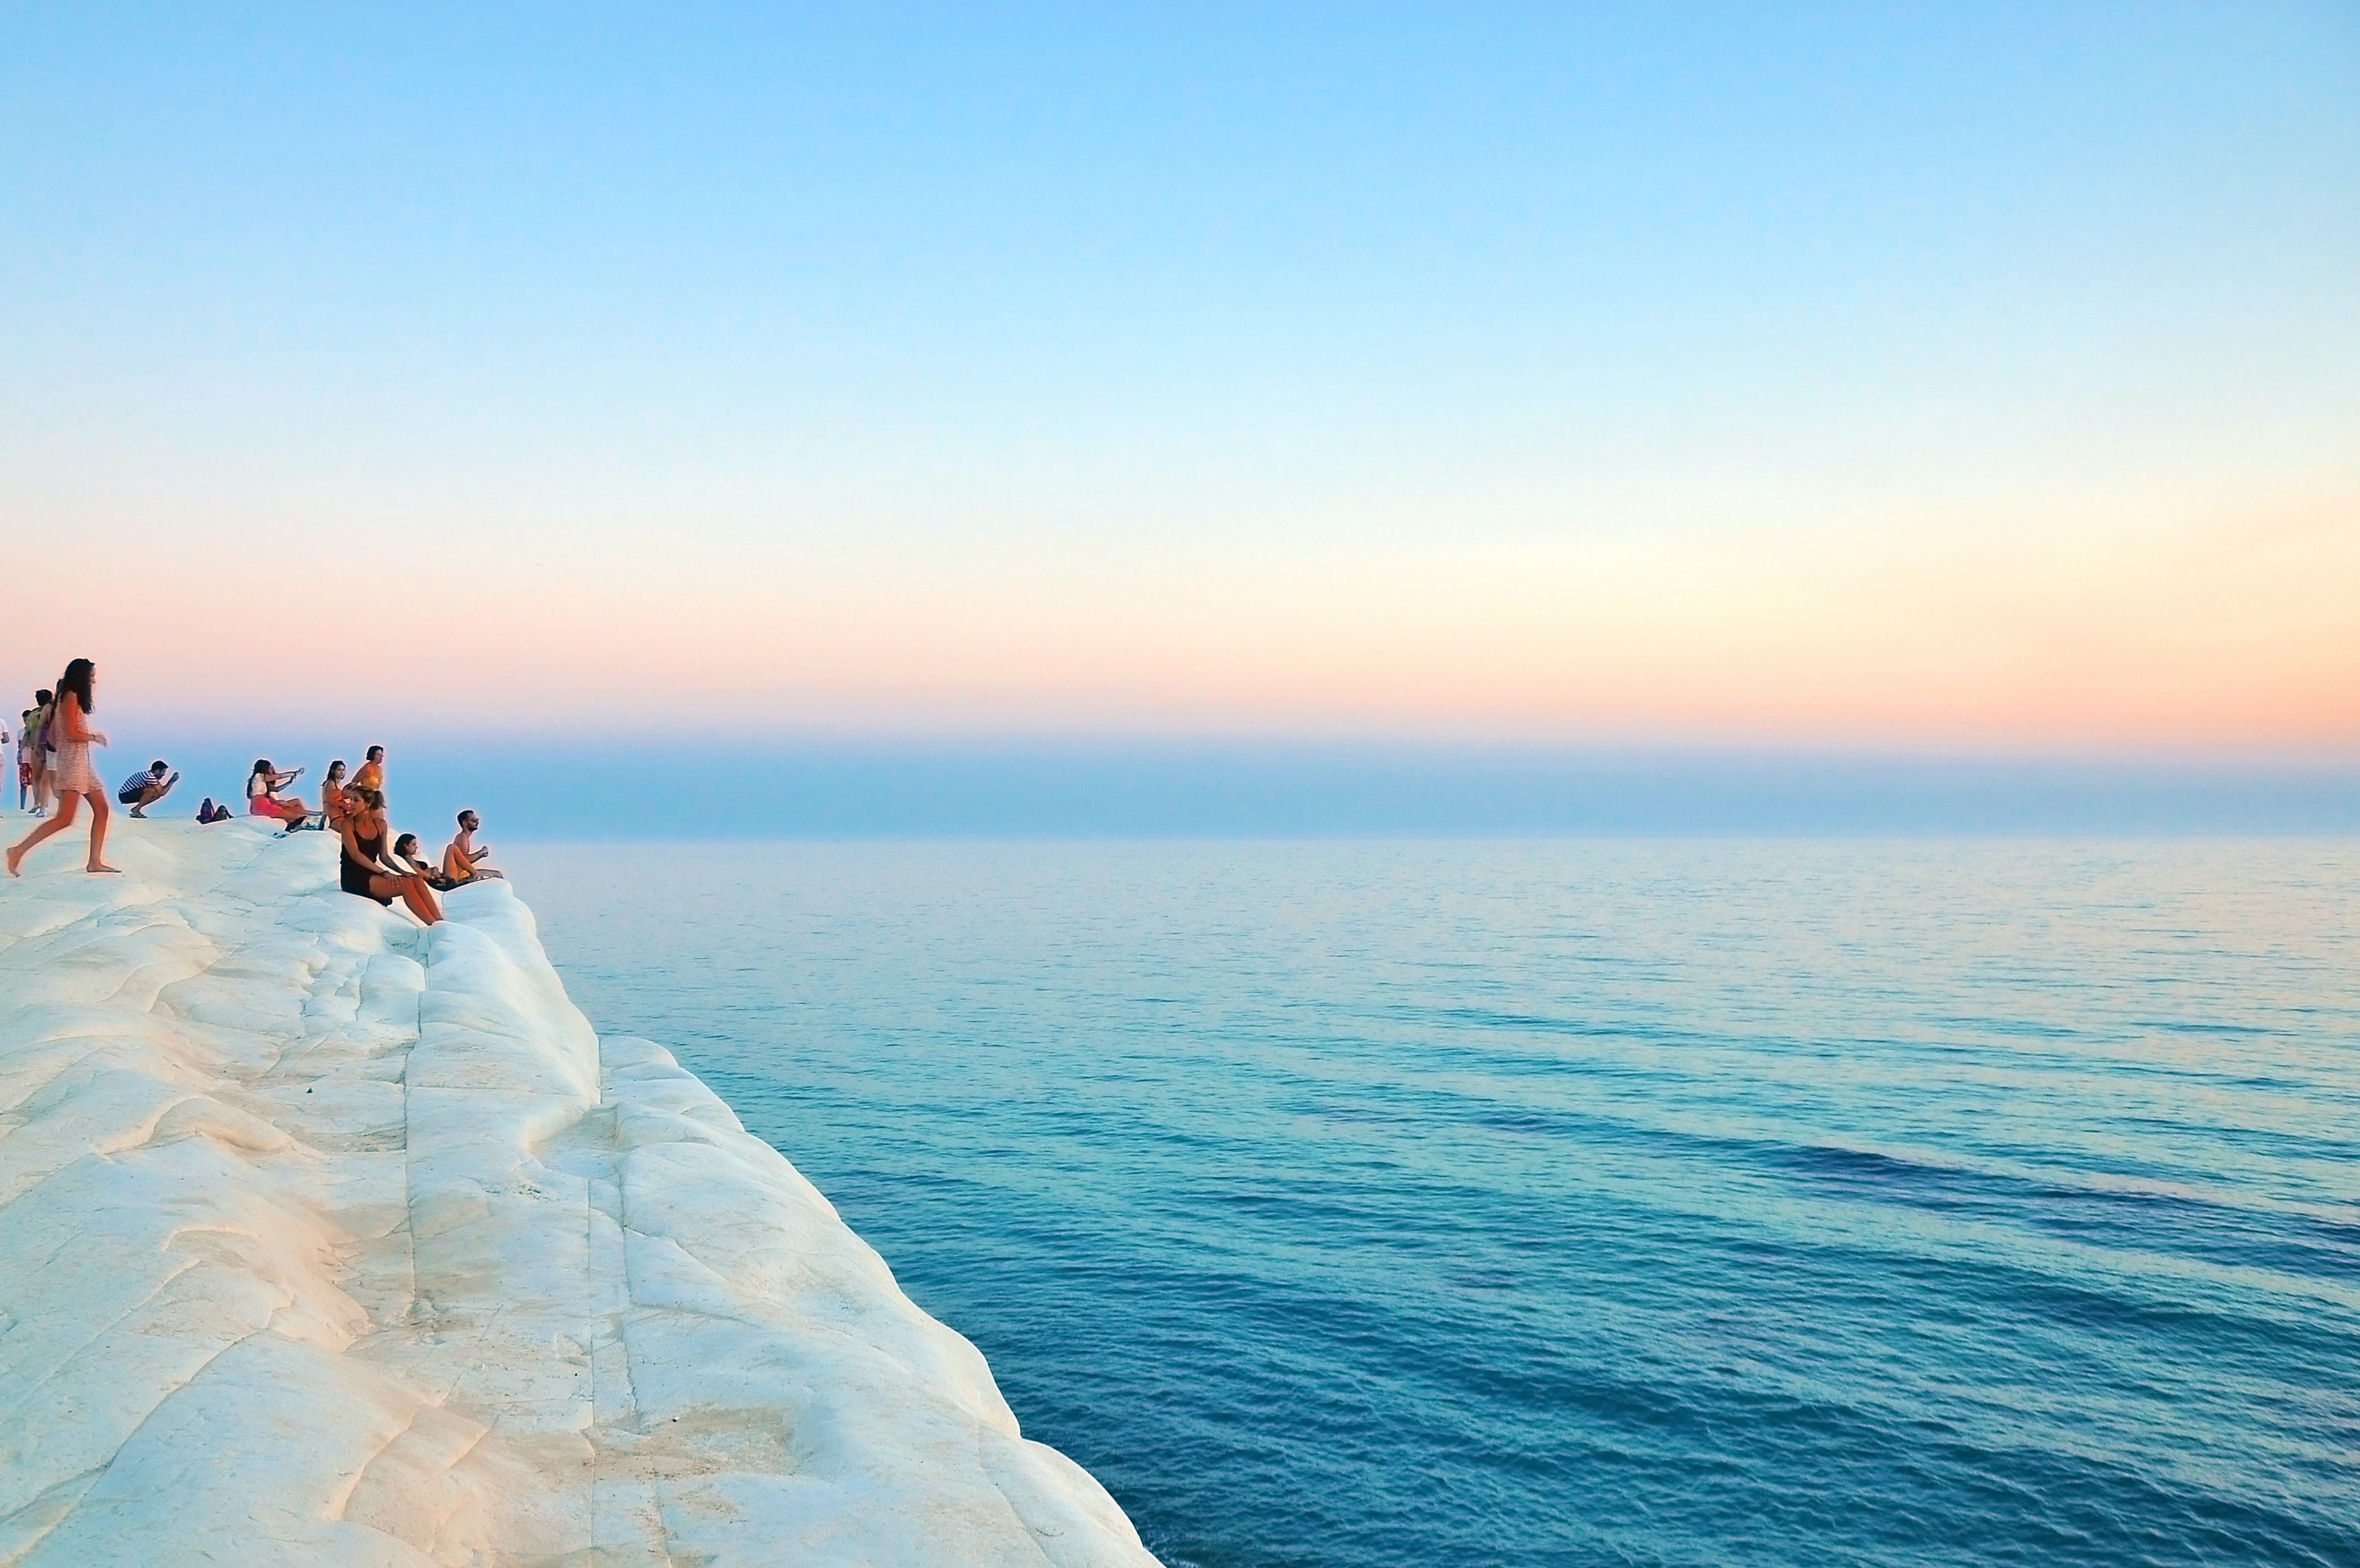 Summer view with people enjoying the ocean view from a white rock in Scala dei Turchi